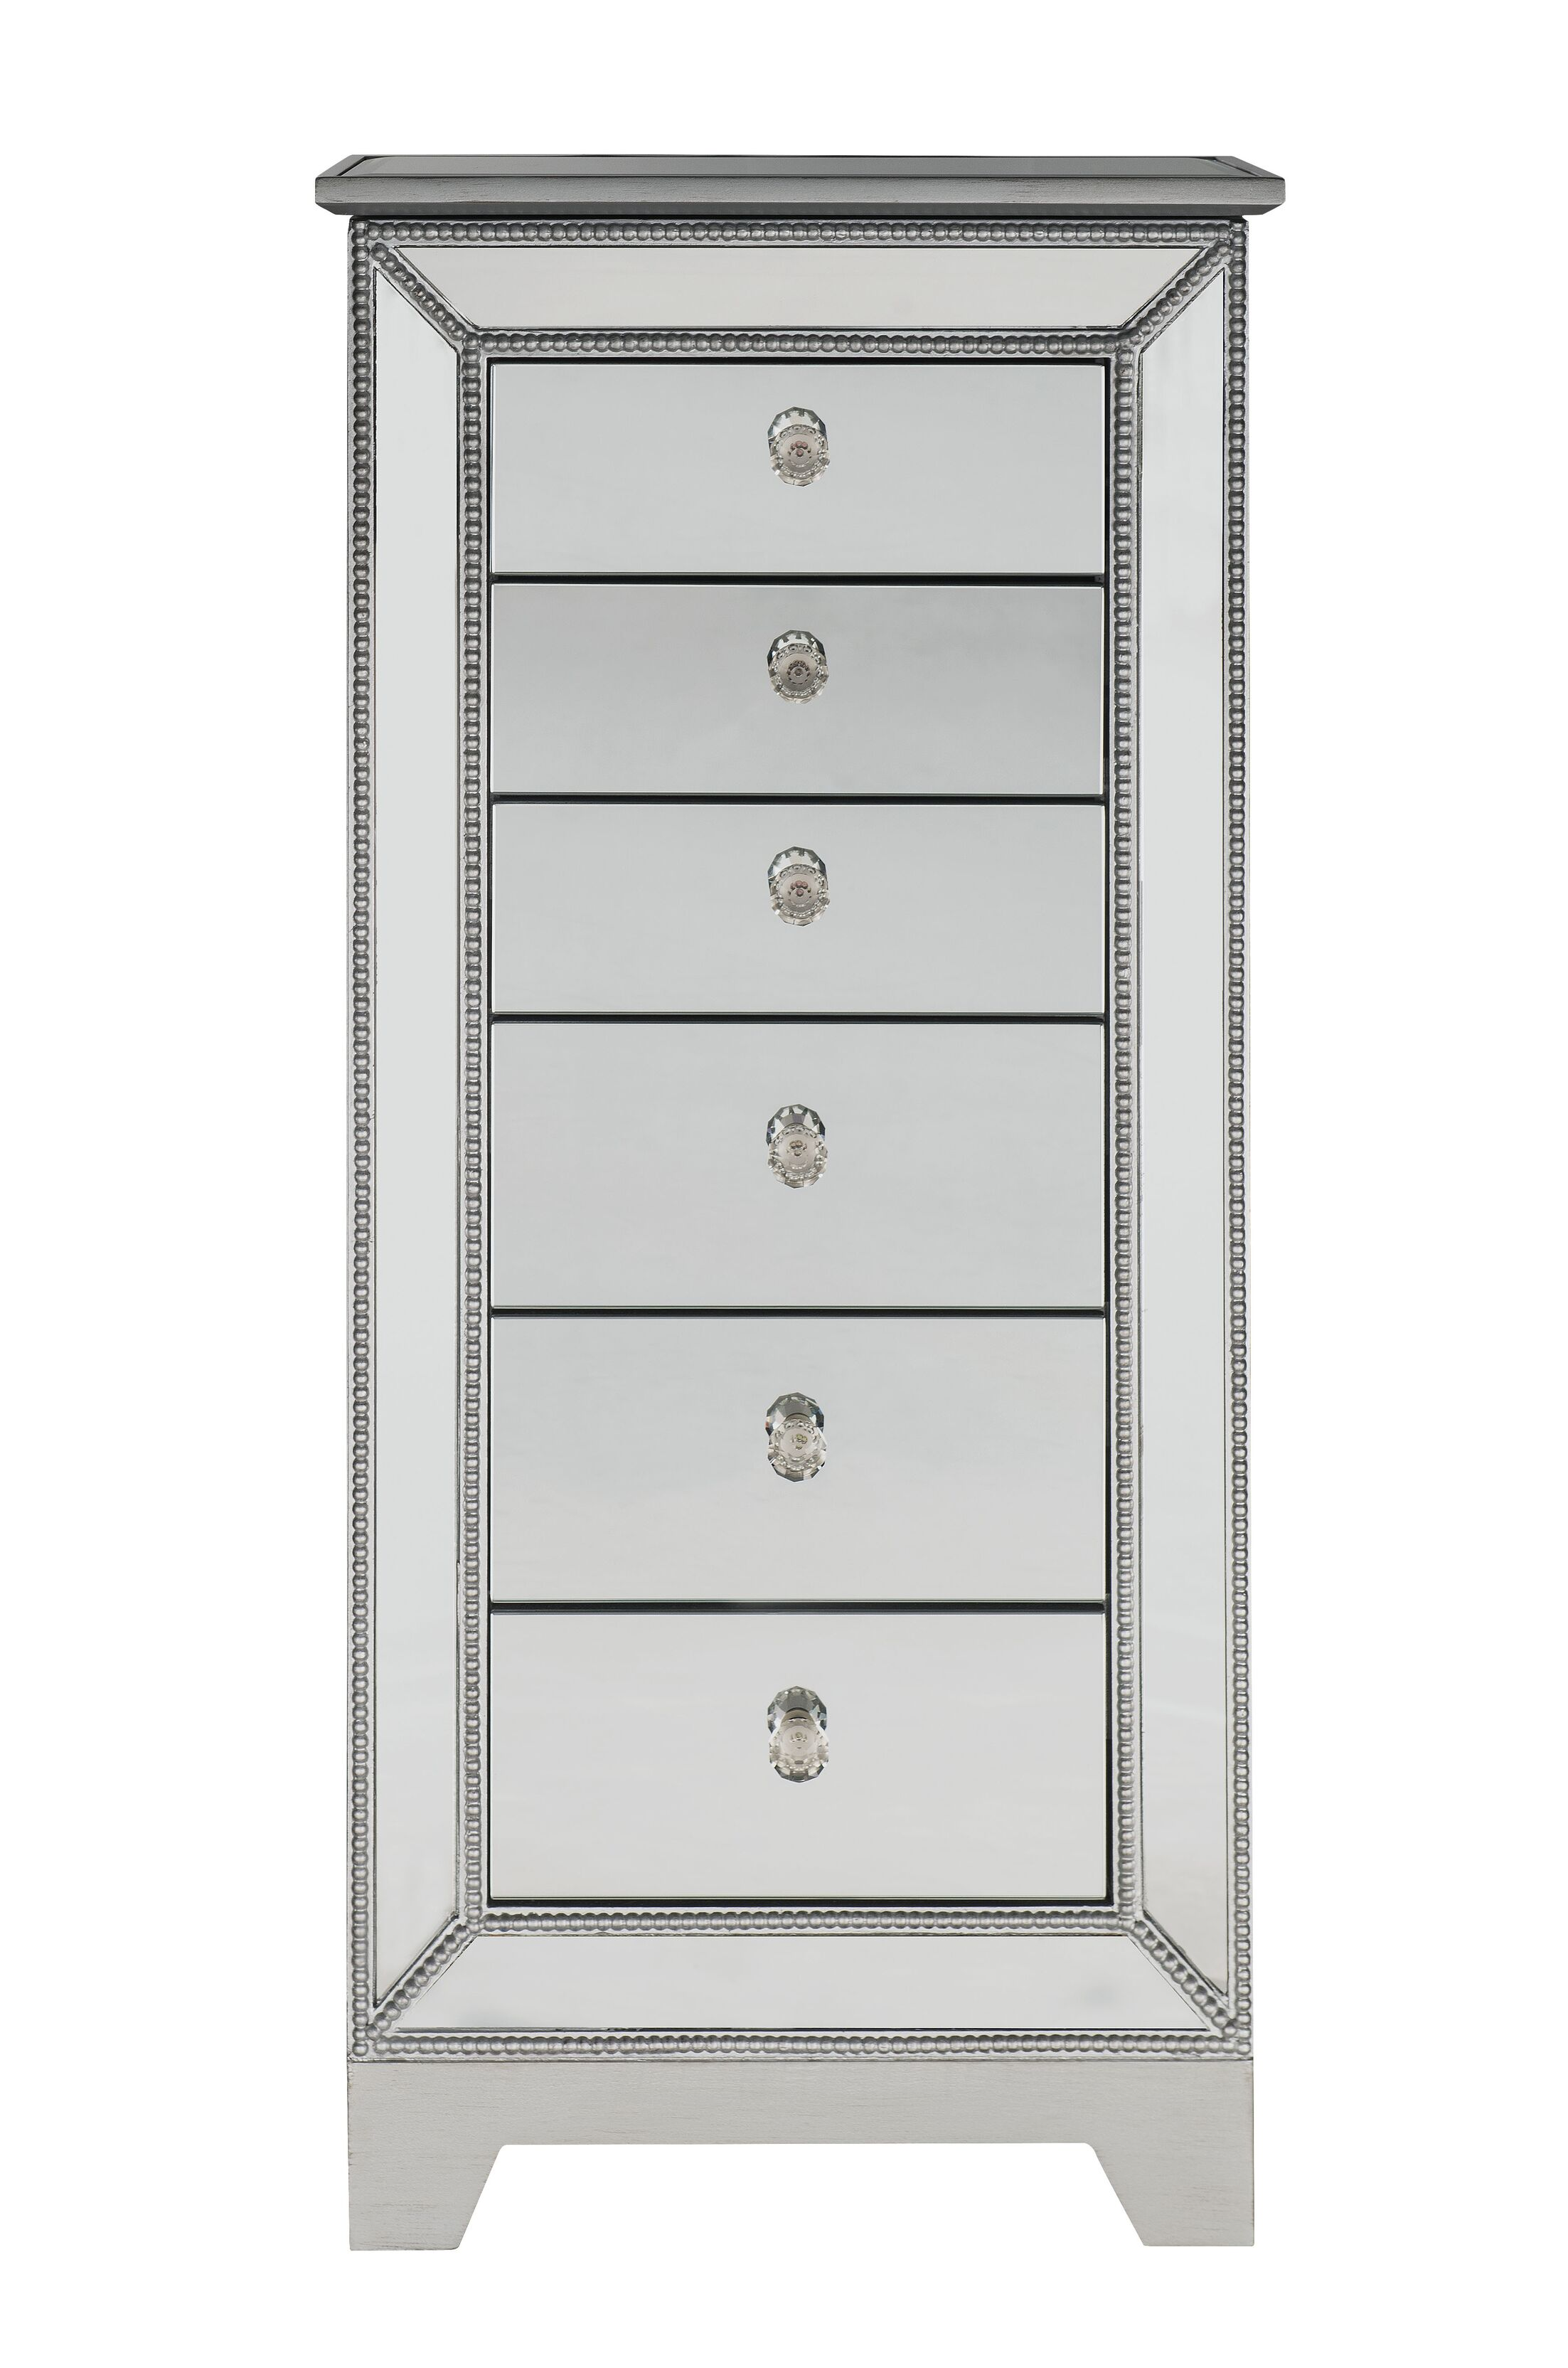 Mariaella Free Standing Jewelry Armoire with Mirror